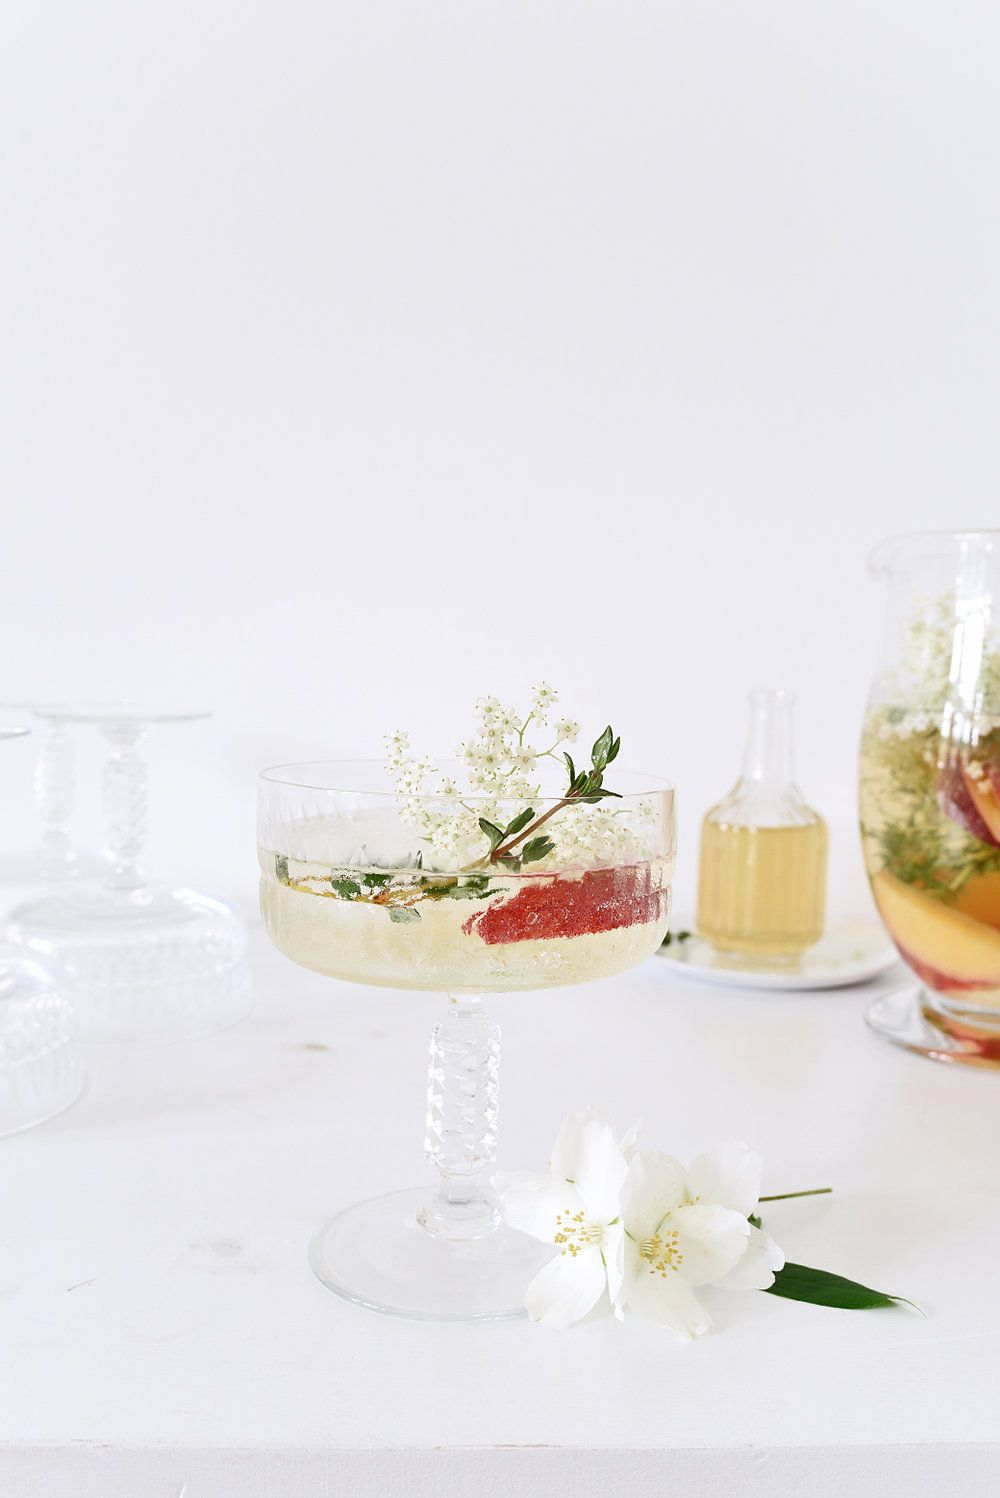 4 Simple Ways To Decorate For A Garden Party At Home